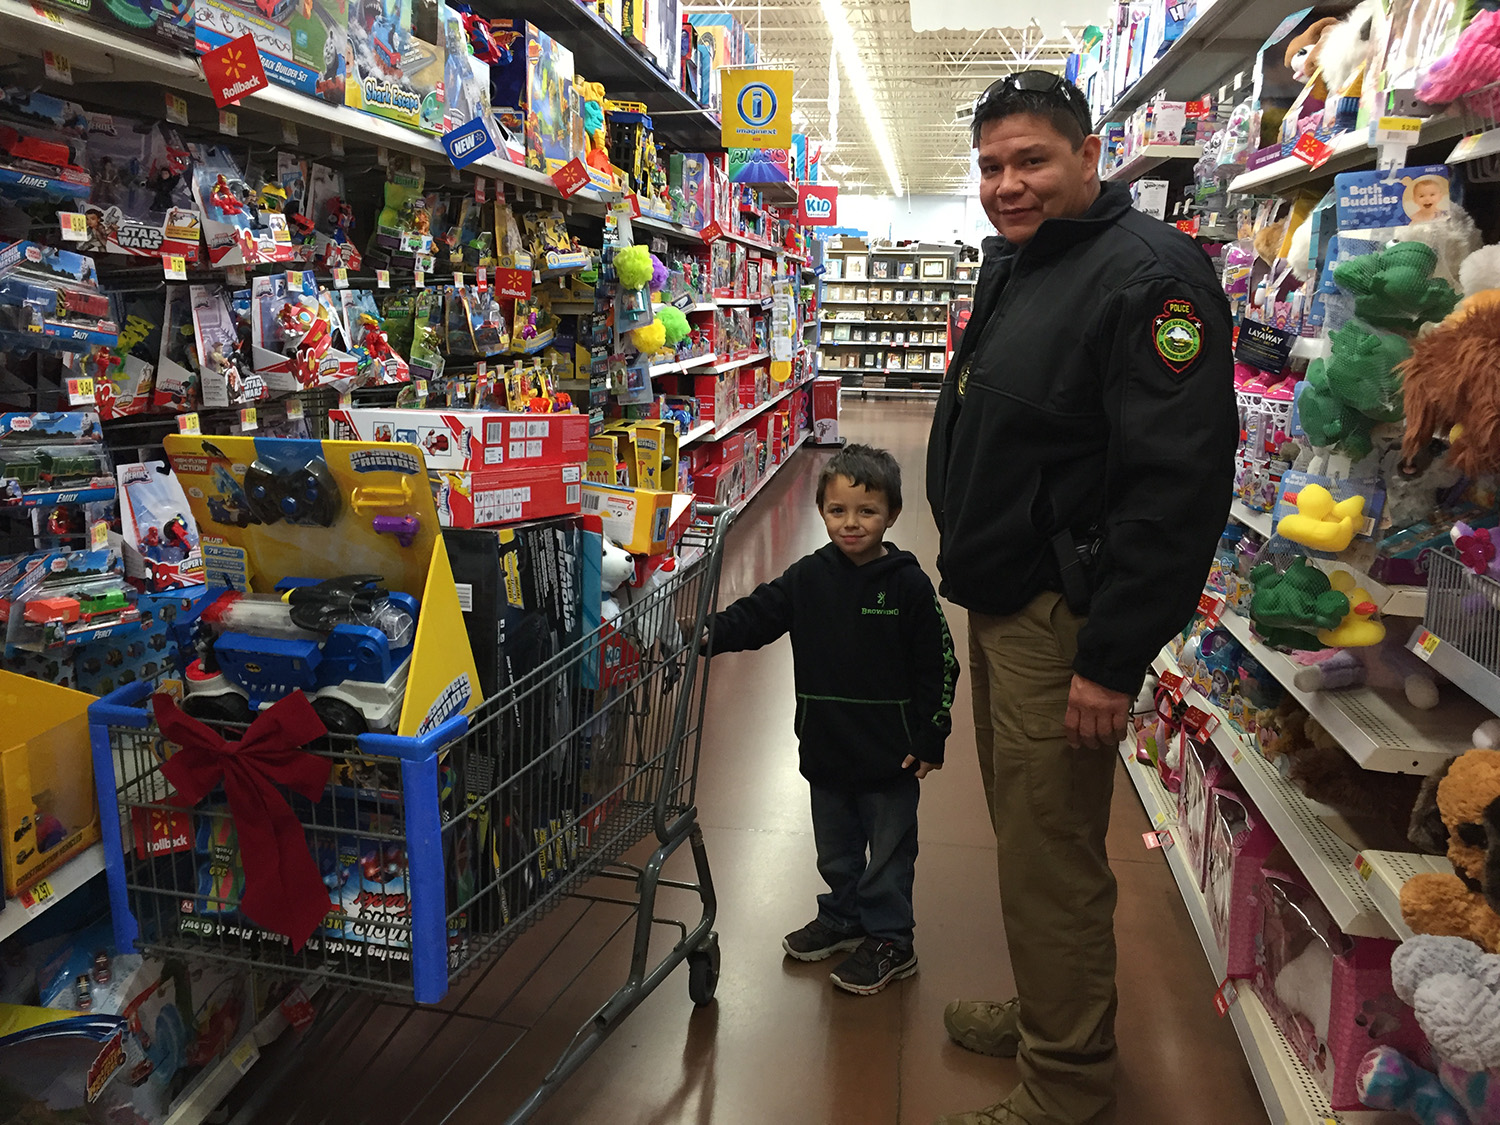 Muscogee (Creek) Nation Lighthorse Police participates in 4th Annual Shop with a Cop